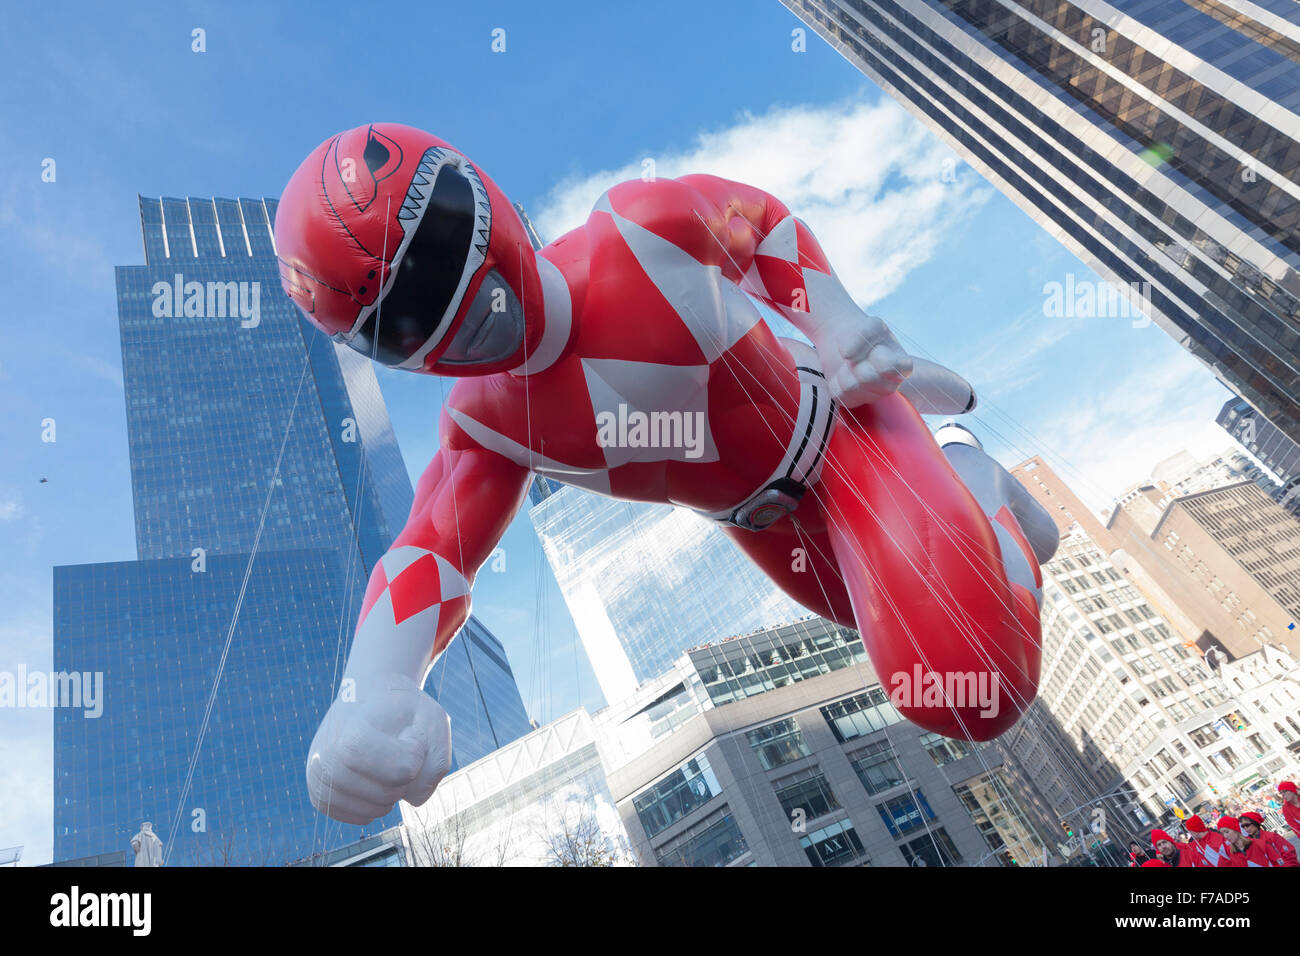 New York, NY USA - November 26, 2015: Giant Red Mighty Morphin Power Ranger balloon flown at the 89th Annual Macy's - Stock Image